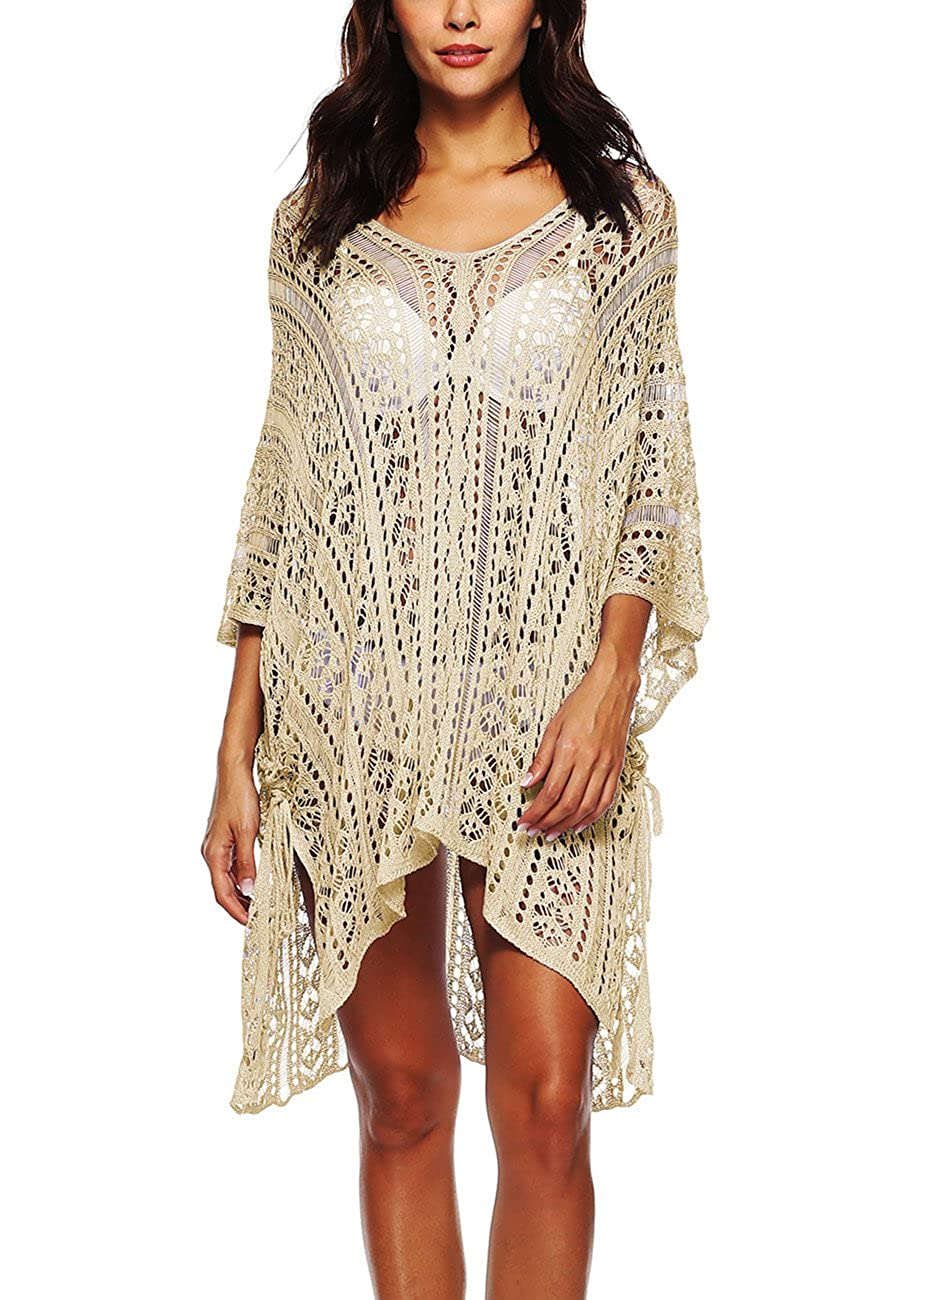 DearQ Women\'s V-Neck Hollow Out Summer Top Swimsuit Cover UPs ...